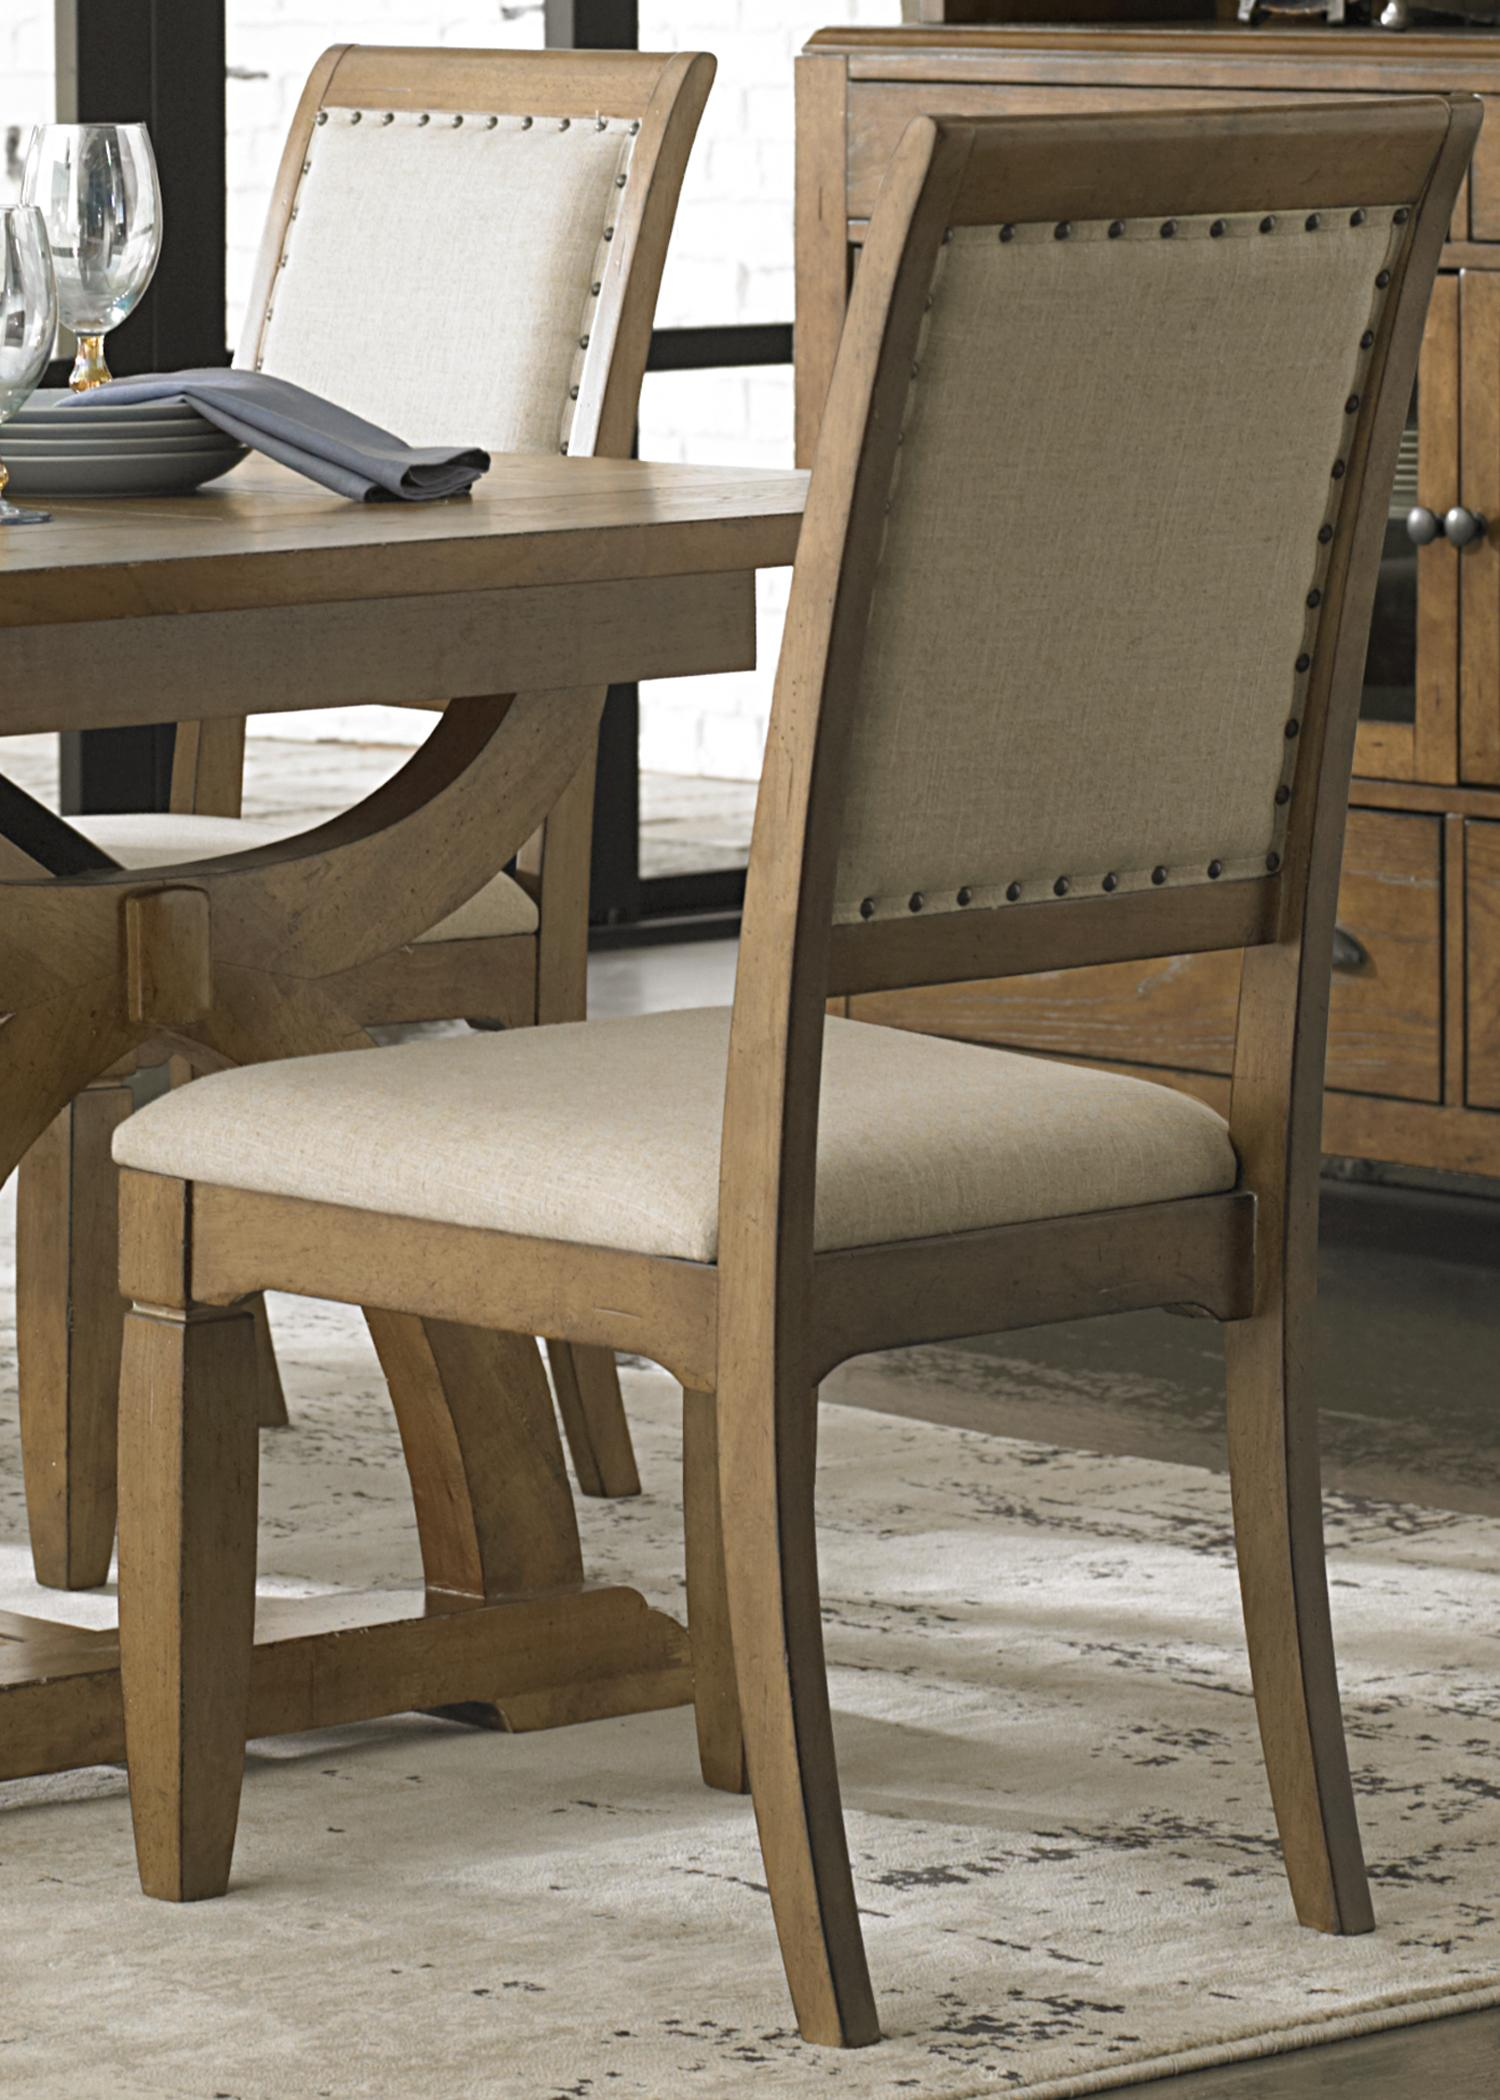 6 piece trestle table set with 4 upholstered chairs dining bench 6 piece trestle table set